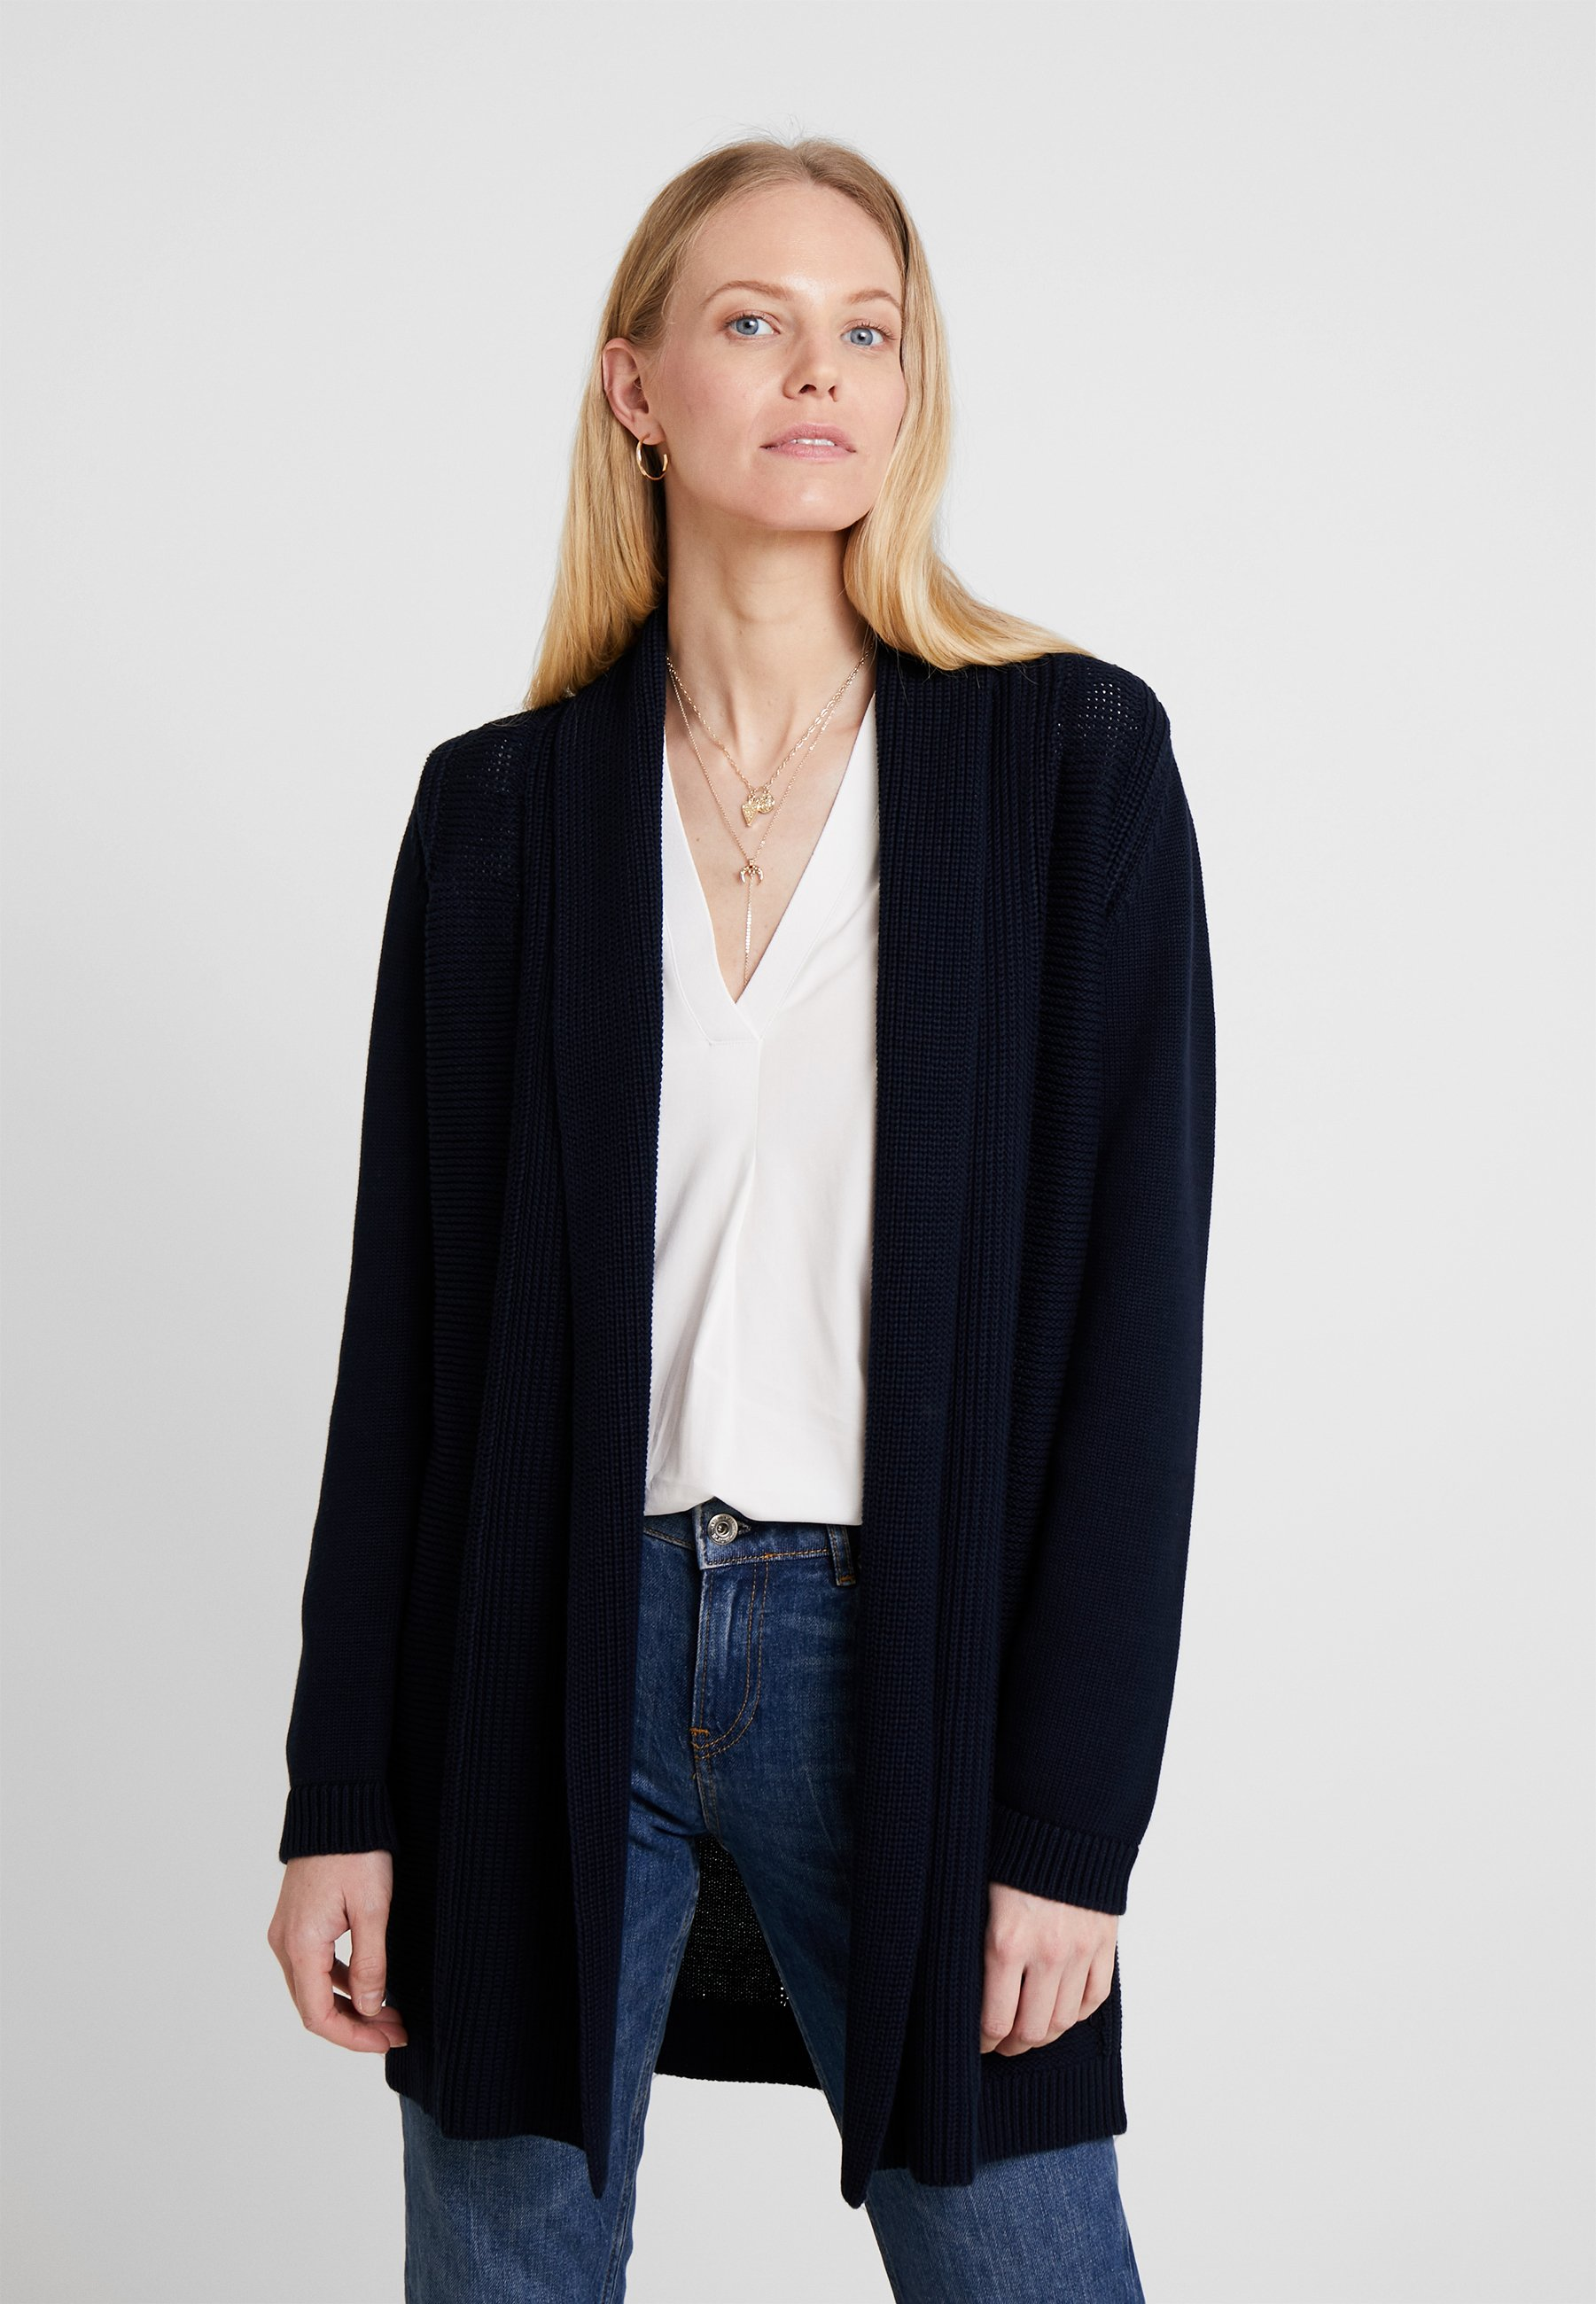 LongsleeveGilet O'polo Midnight Marc Blue Cardigan DHeb9IWE2Y